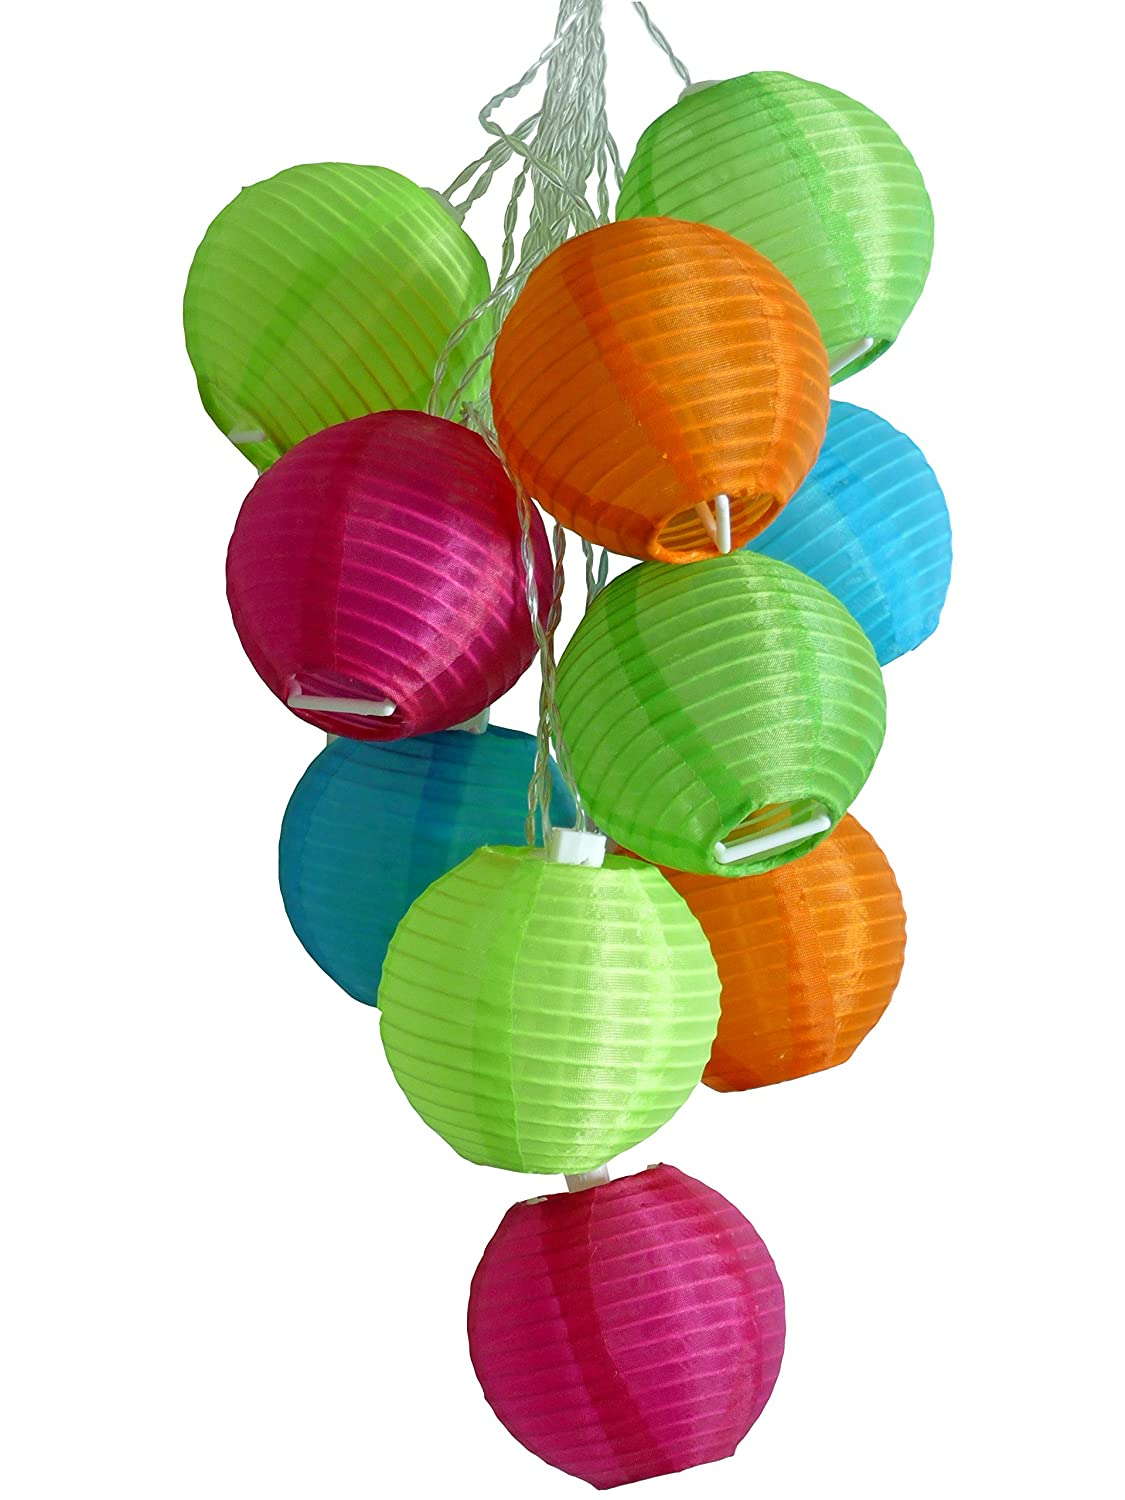 Allsop Home and Garden Soji Solar String Lights, Globe Style LED Outdoor Solar Lanterns, Handmade with Weather-Resistant UV Rated Fabric, for Decks, Gardens, Gazebos, Weddings, Mini Chinese Style Lights, (Tropical Fruit)